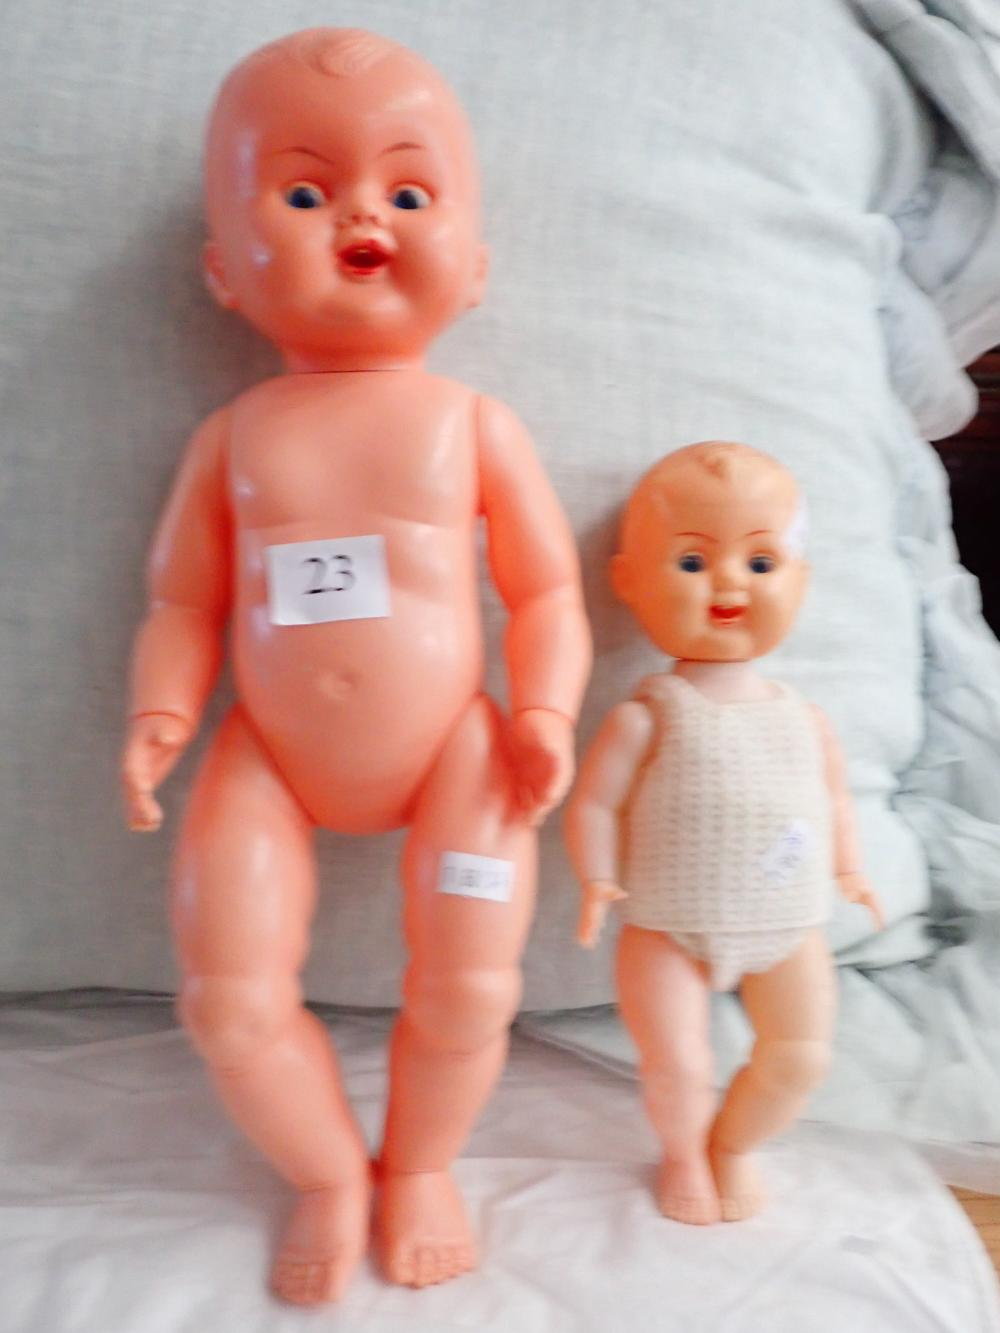 2 CELLULOID DOLLS - OK KADER B3516 DOLL 16 INCH & 1 OTHER B35014 DOLL 10 INCH - EYES & TONGUE MOVE TOGETHER -